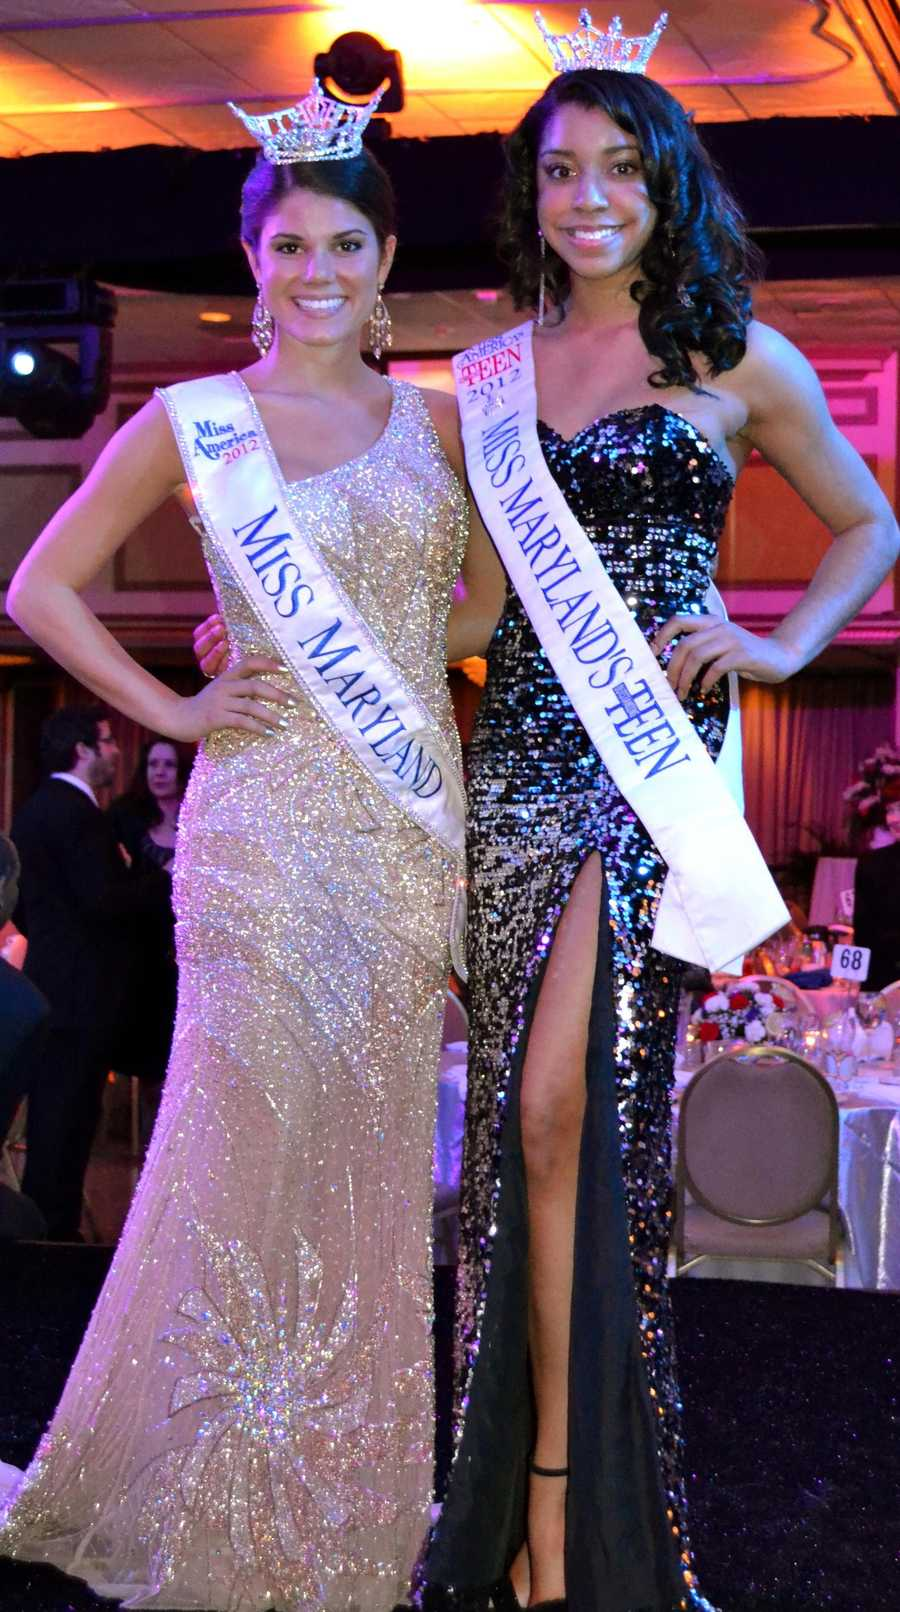 TheMiss Maryland Scholarship Organization holds its pageant beginning June 16 to crown the next Miss Maryland. The following are the contestants, their causes and their talents.